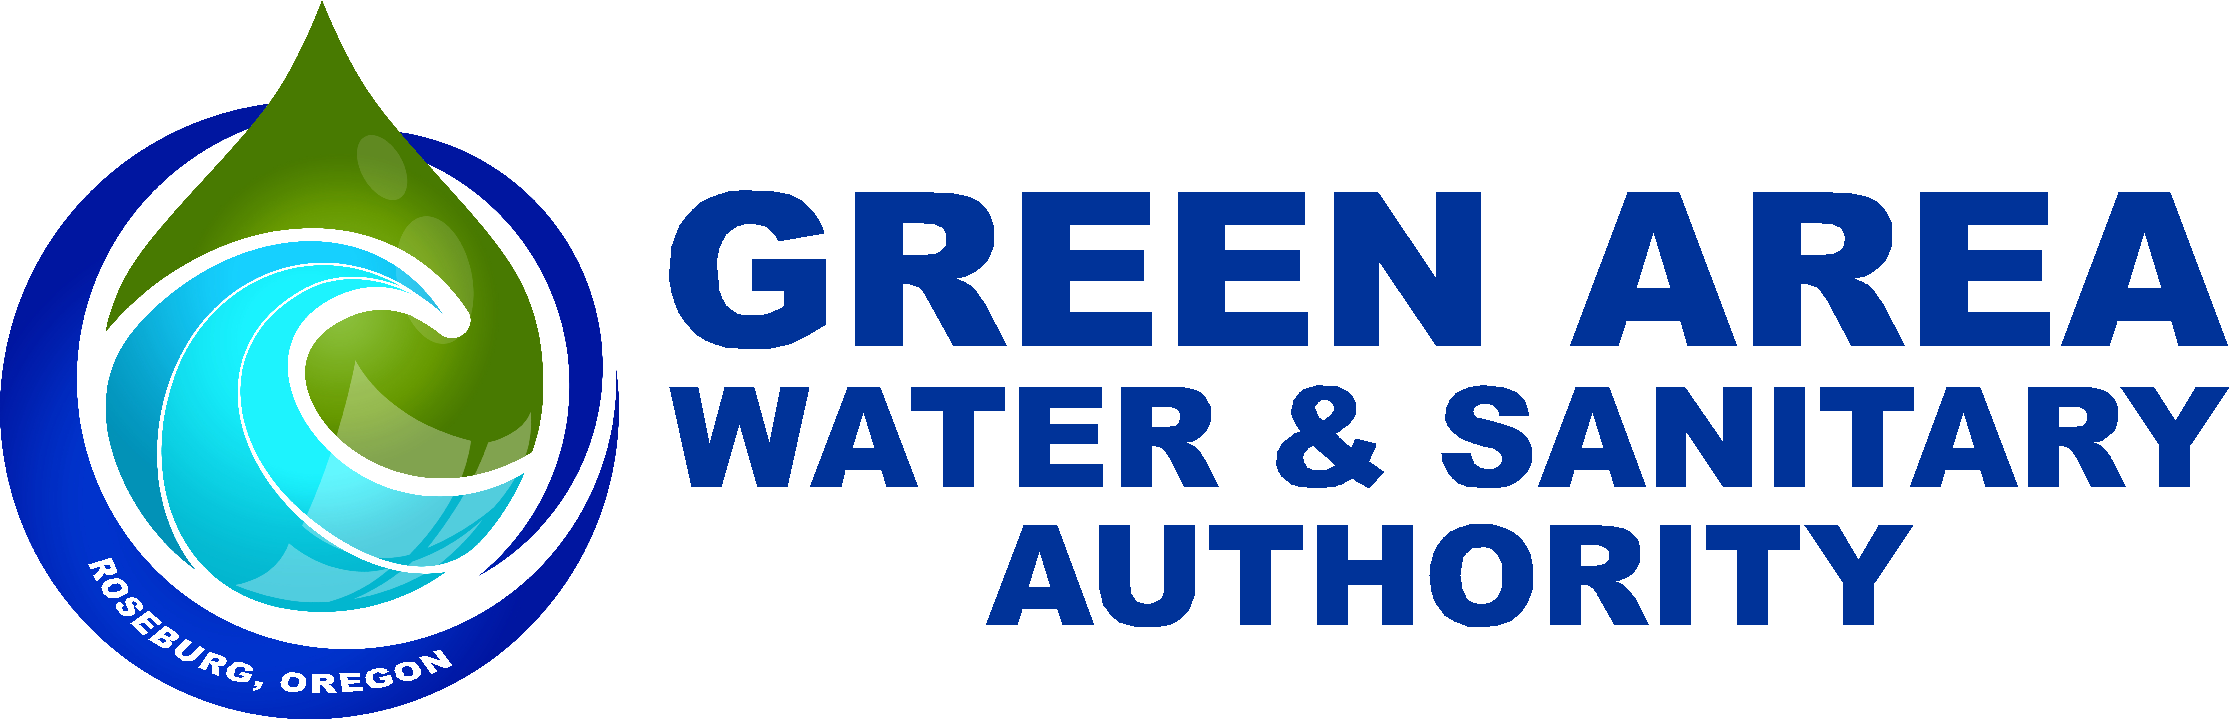 Green Area Water & Sanitary Authority